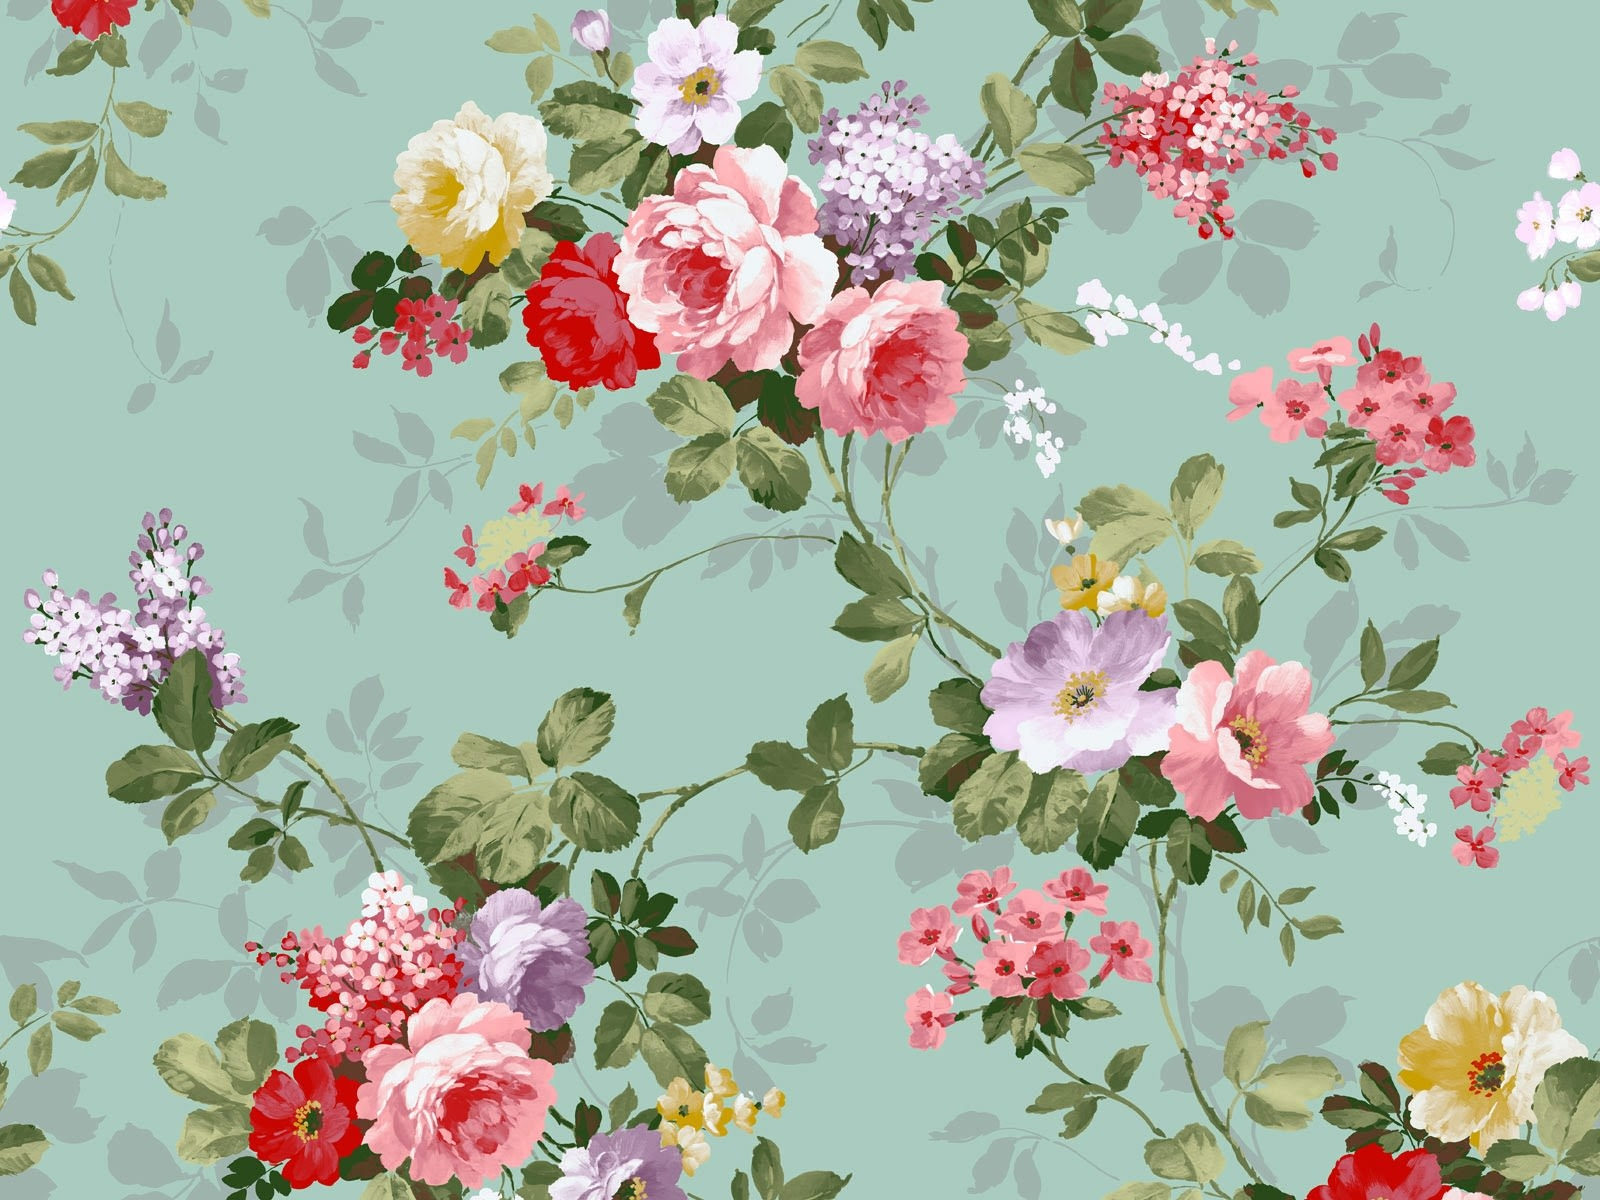 chintz wallpaper desktop - photo #33